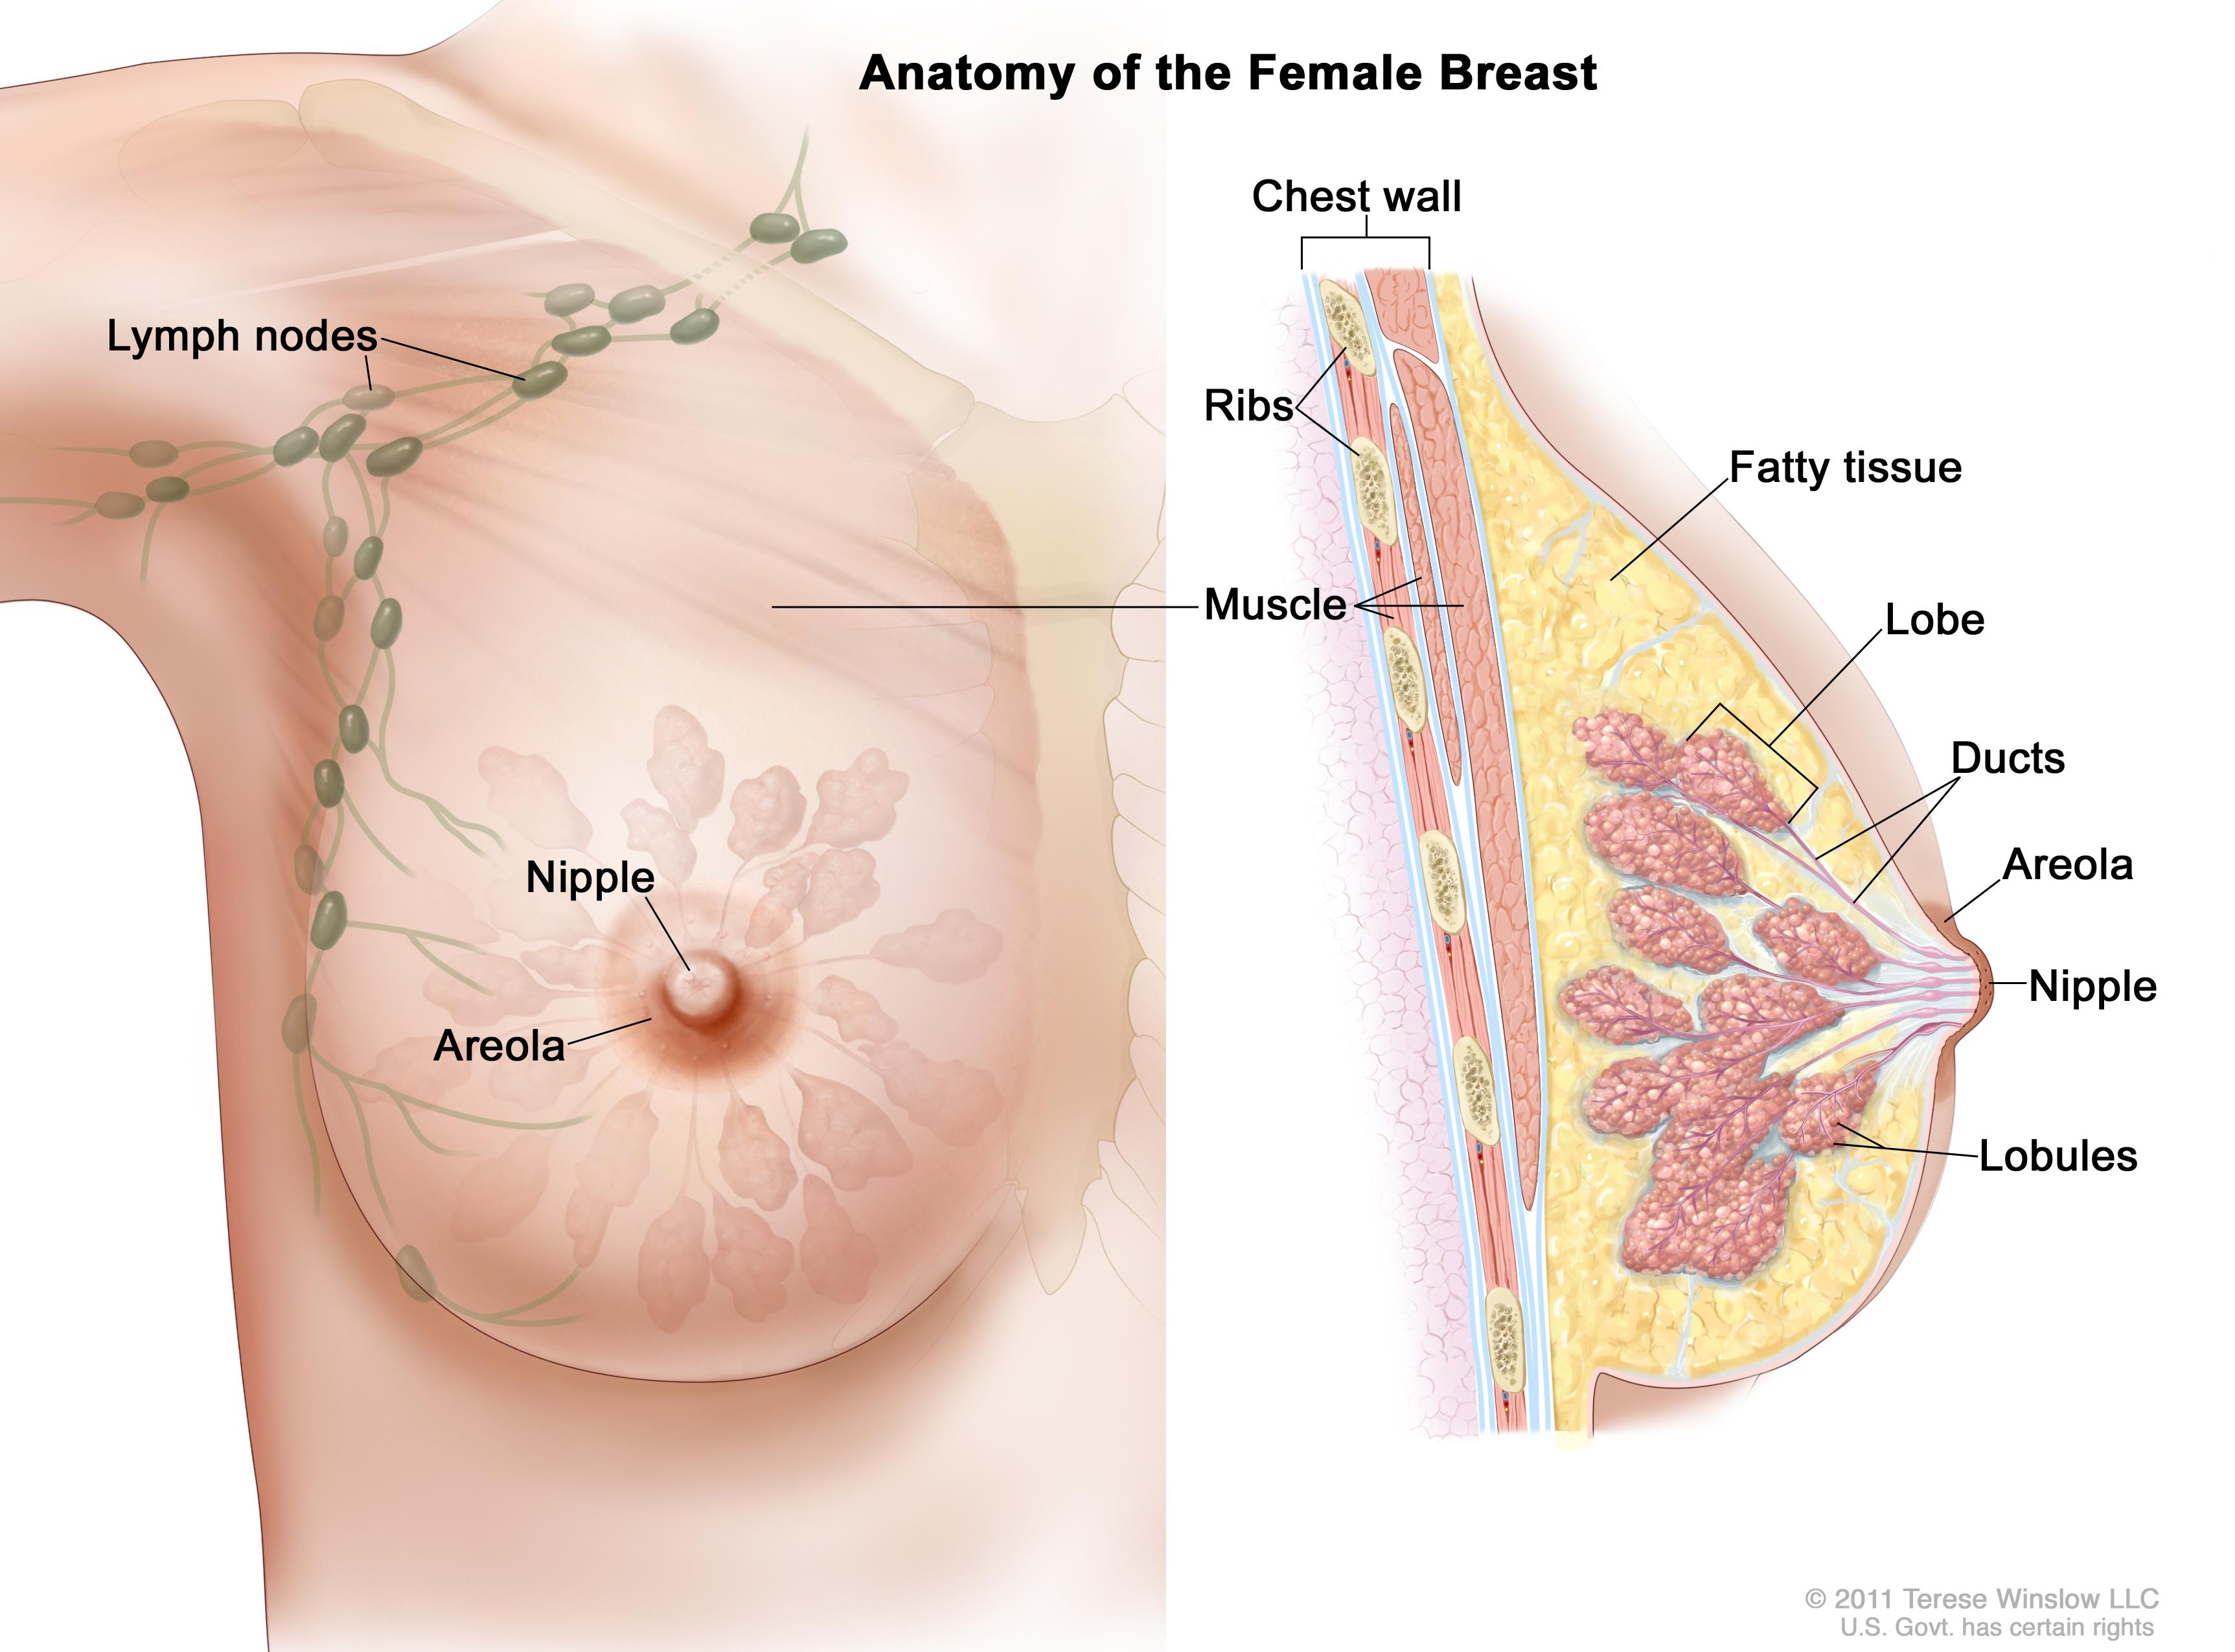 Breast Treatment Pdq additionally Coaching Using The Logical Levels also Traditional Japanese Architecture Style together with Chto takoe lyubov   otvety detey additionally Vaginal Cancer Treatment General Information About Vaginal Cancer. on know types floor l s